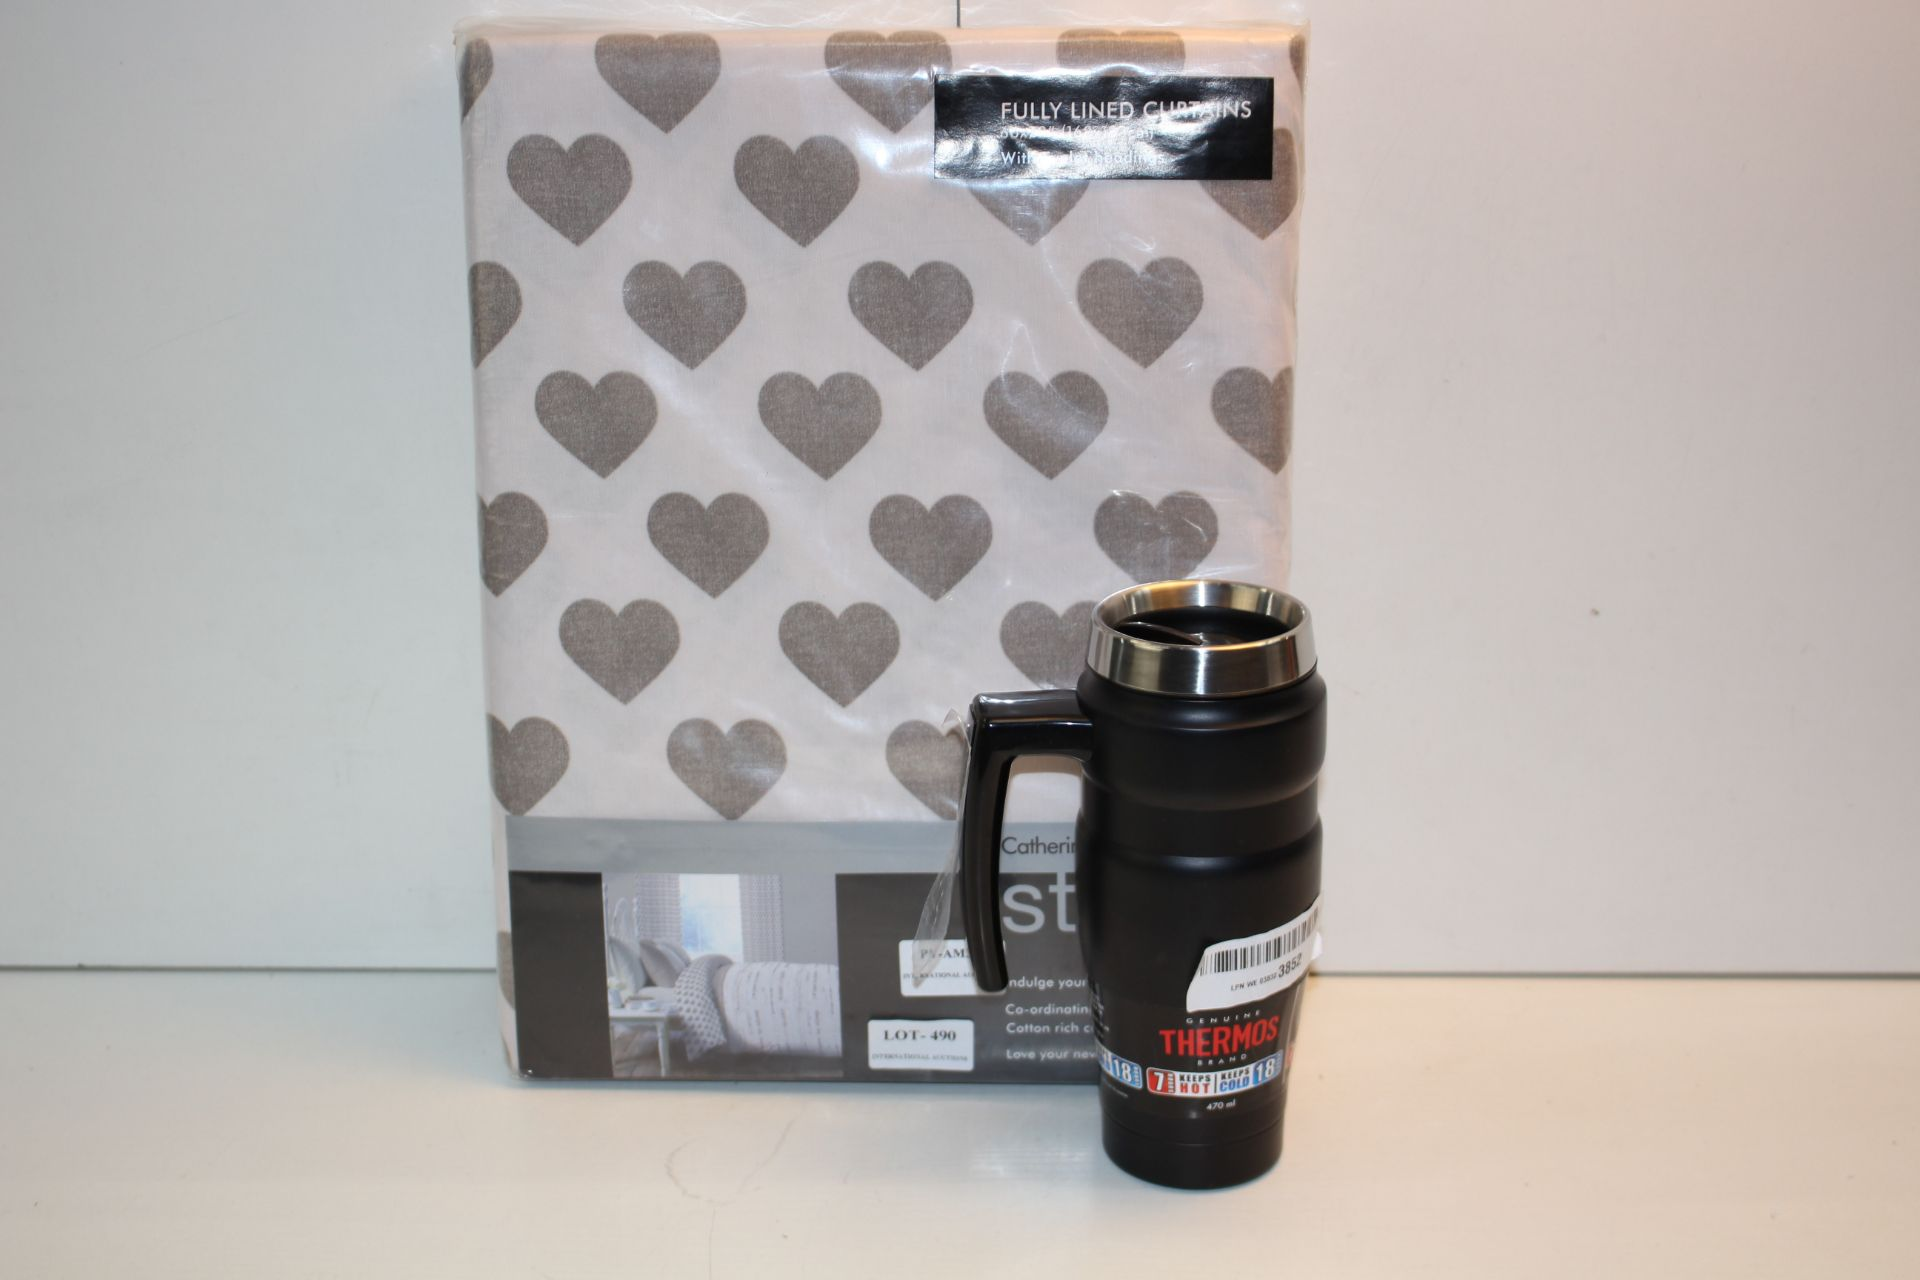 X2 HOME ITEMS INCLUDING 66X72 FULLY LINED CURTAINS AND THERMOS 470ML CUP Condition ReportAppraisal